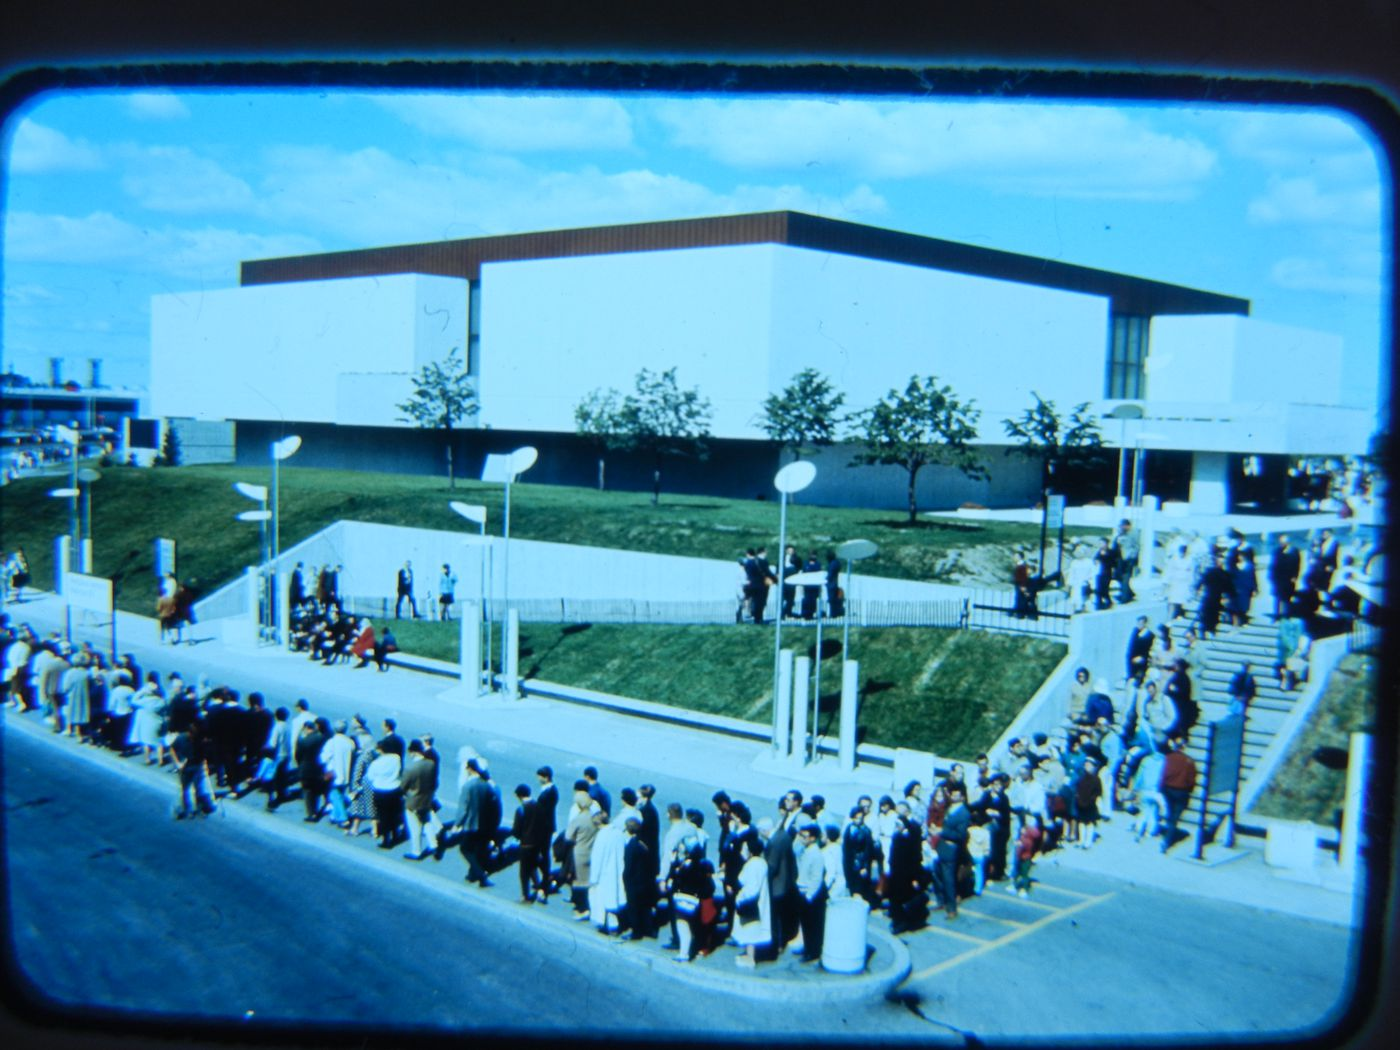 View of the Man the Creator Pavilion with visitors standing in line at a trailer train stop in foreground, Expo 67, Montréal, Québec